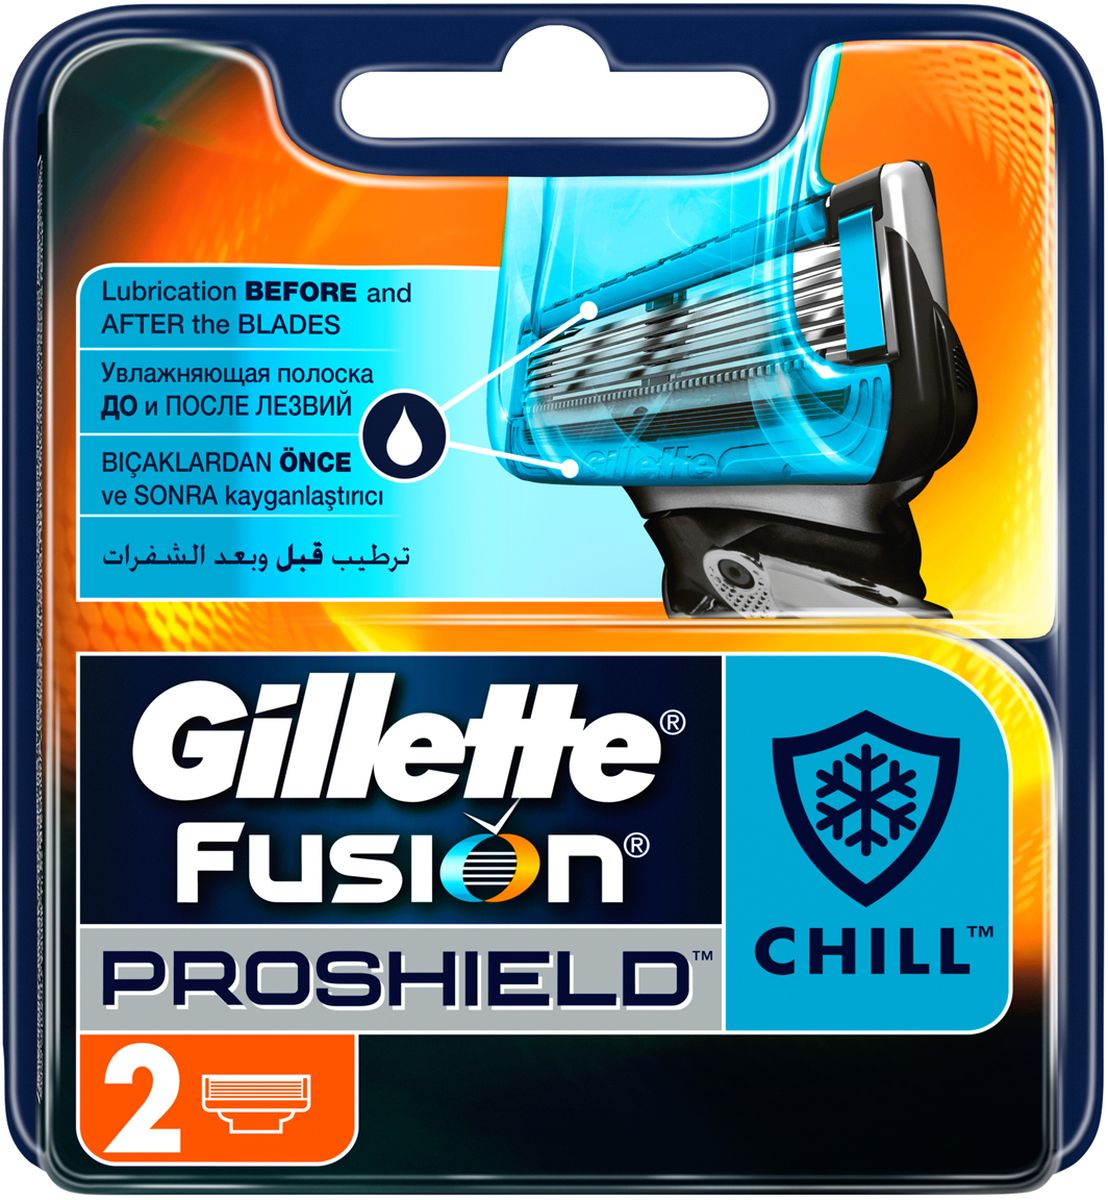 Gillette Сменные кассеты для мужской бритвы Fusion ProShield Chill, 2 шт 168 colors set touchnew art markers marker alcohol based double end permanent twin marker pen with pen case